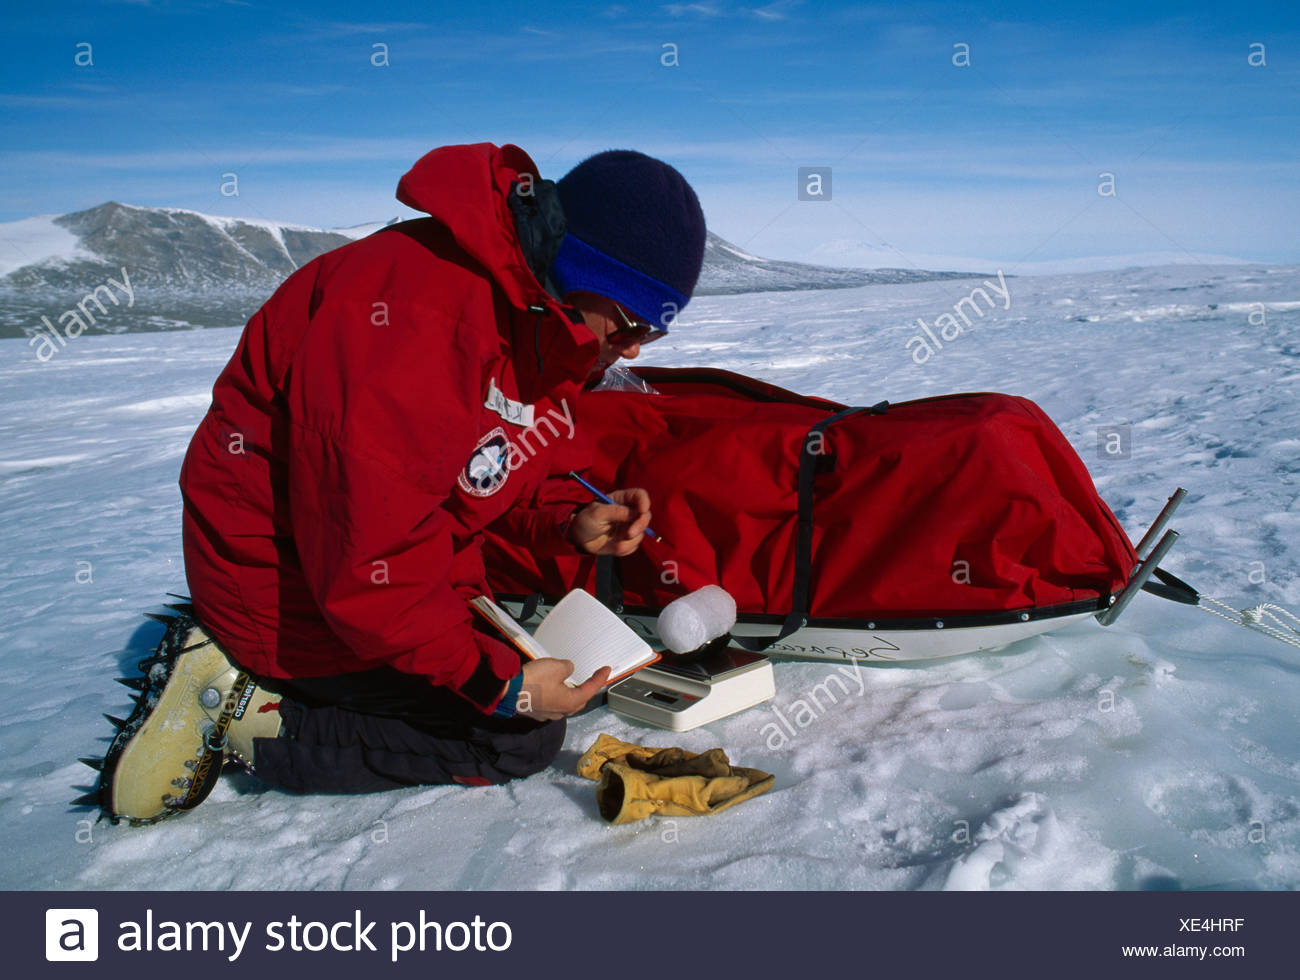 ICE CORE WEIGHING - Stock Image